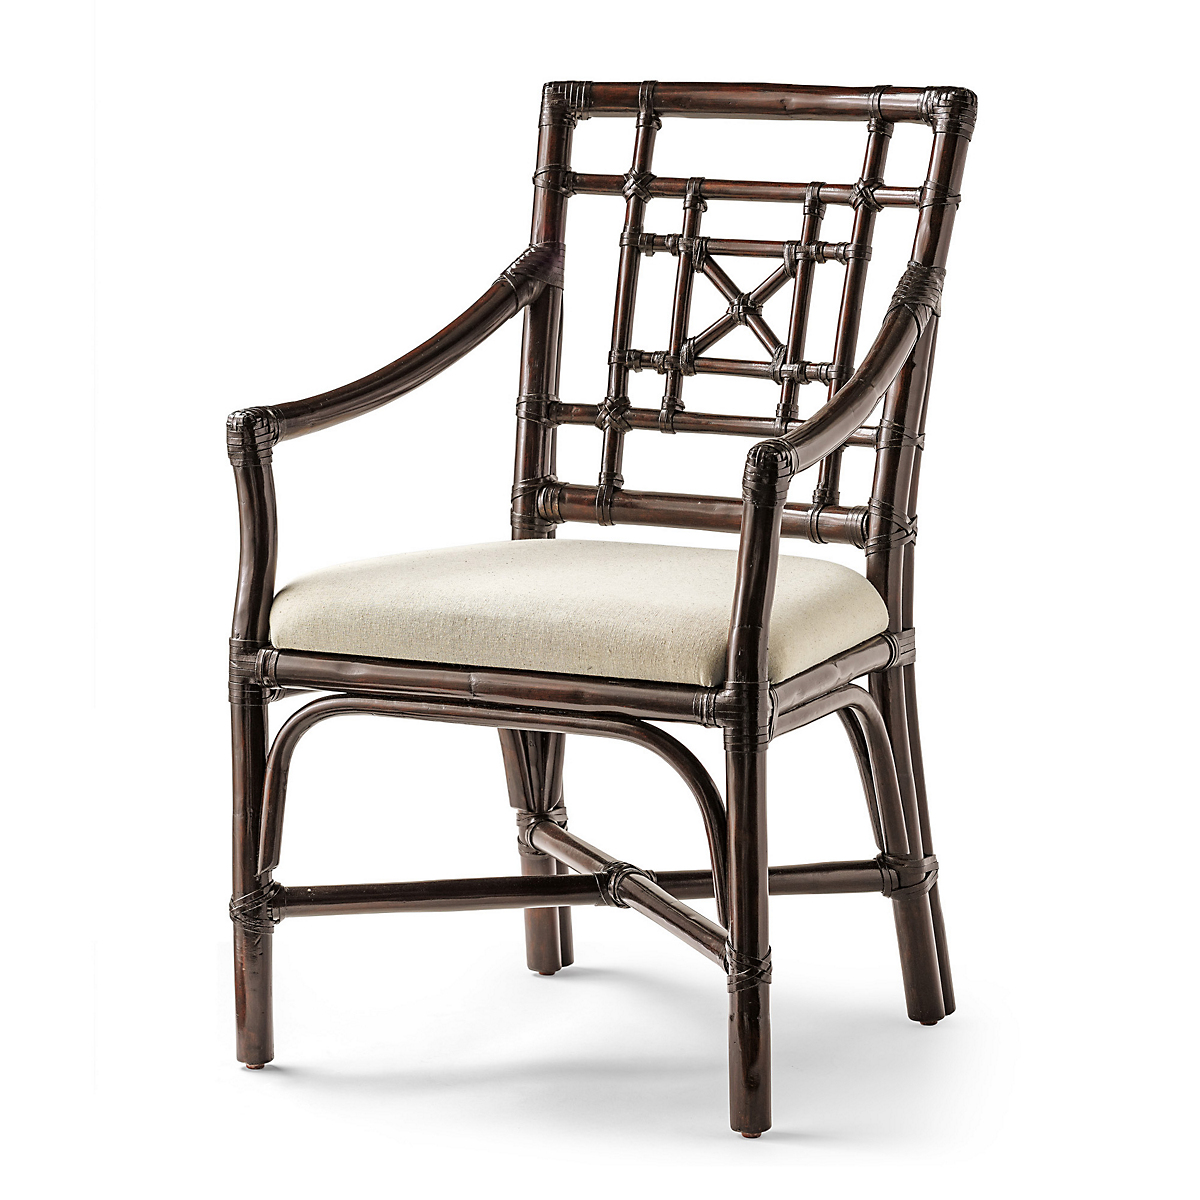 Emerson Chairs